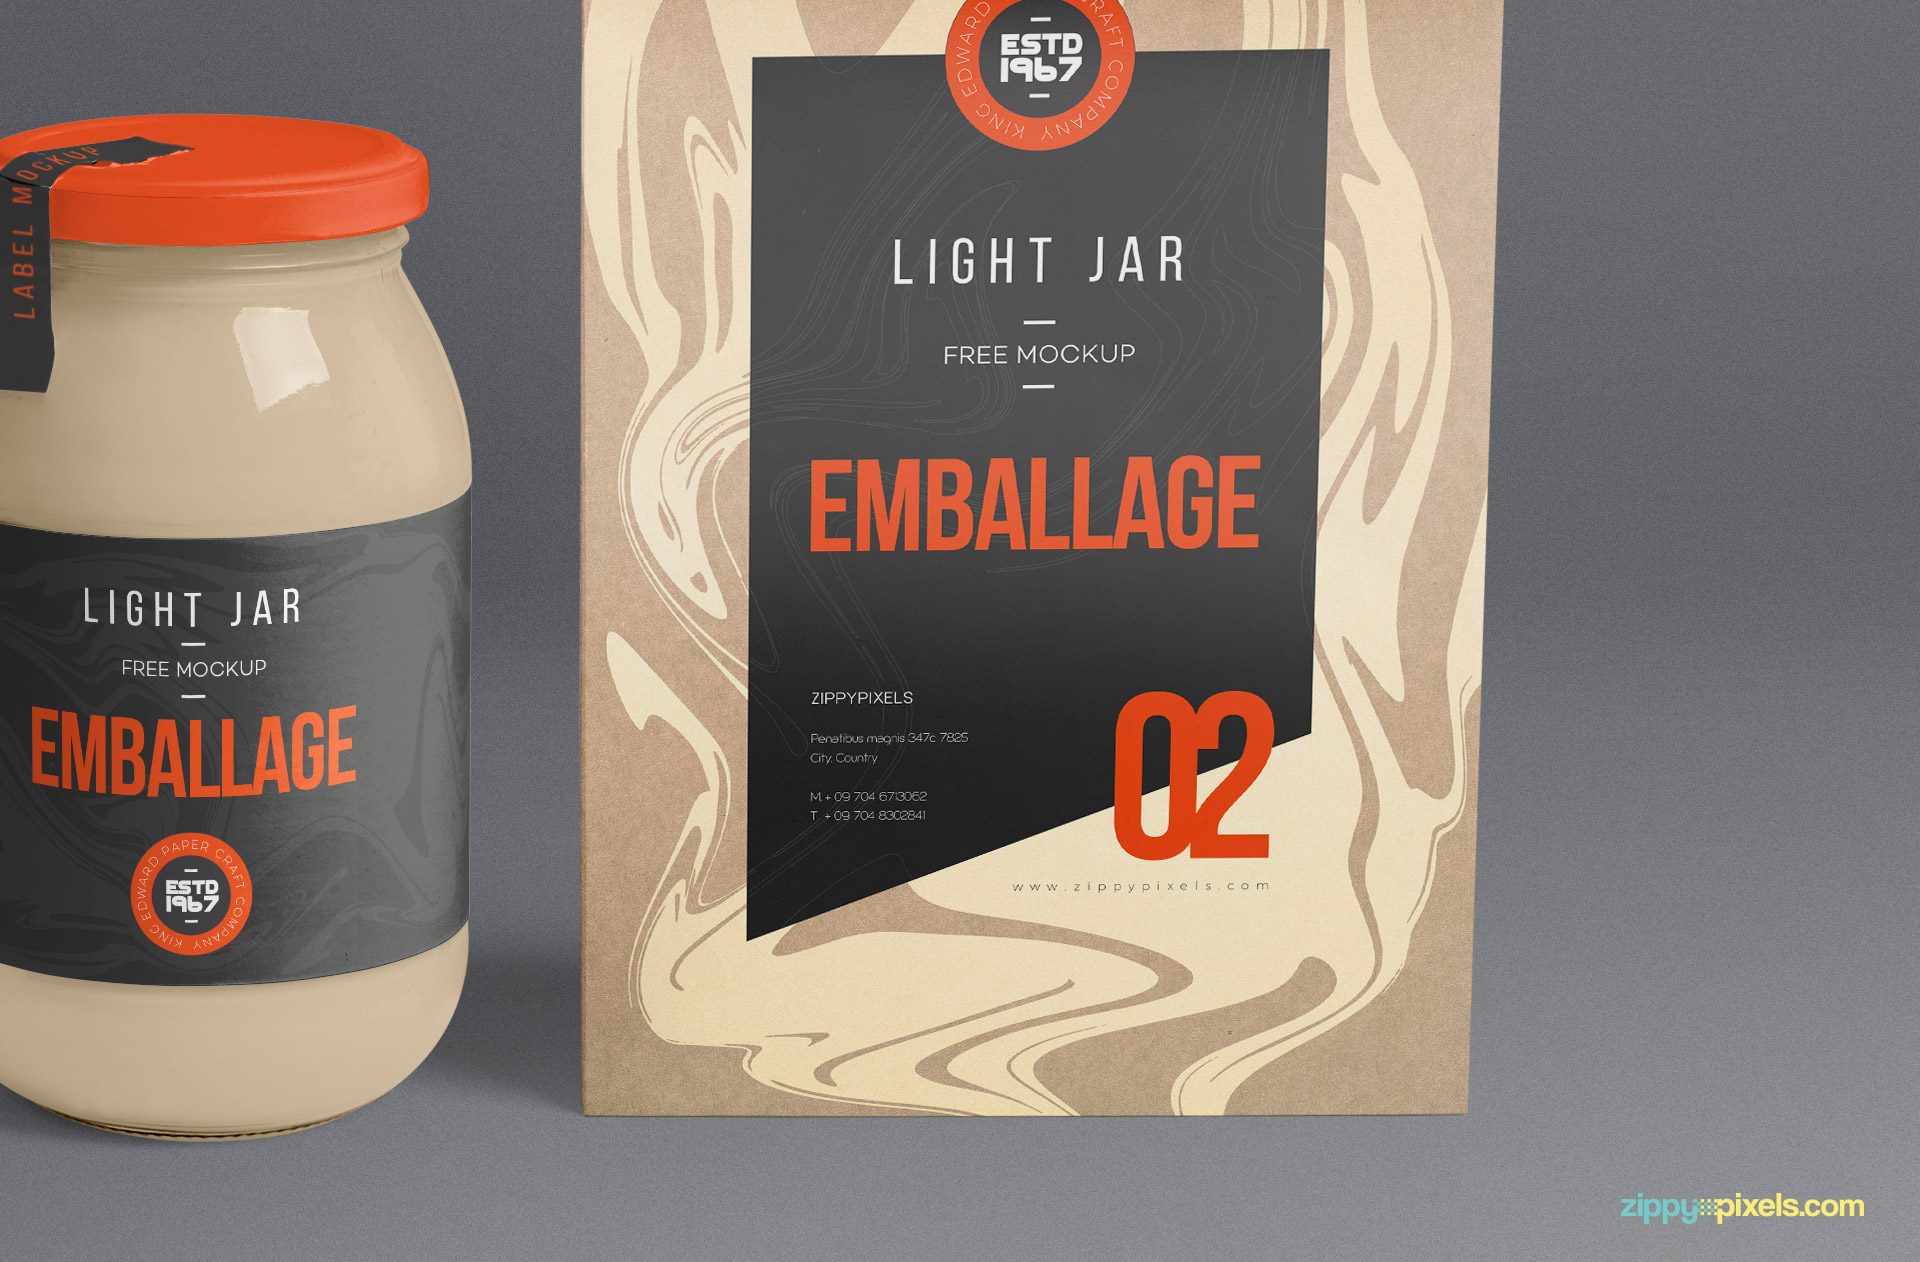 The glass jar and packaging bag both have separate smart objects for design insertion.